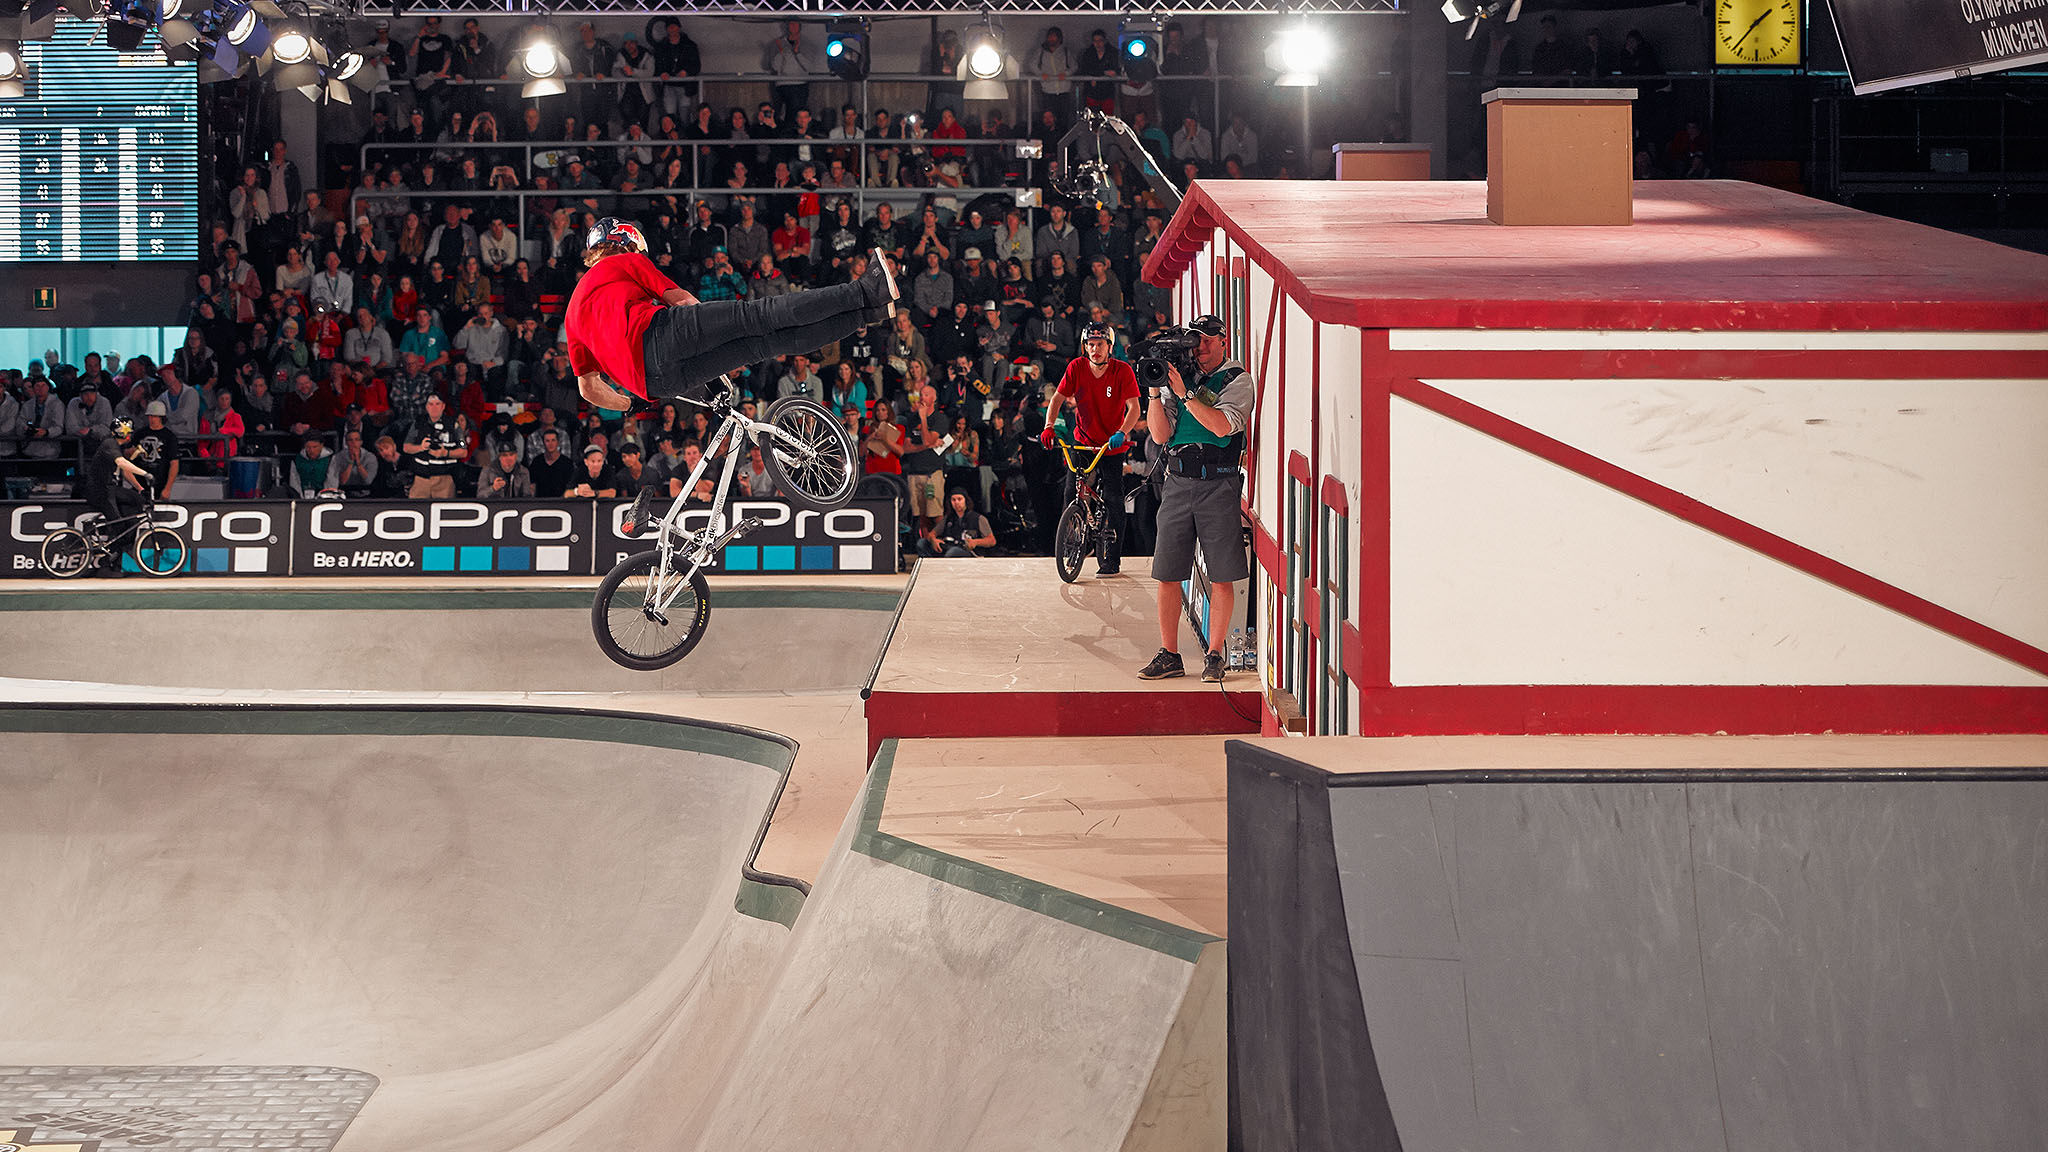 Canadian Drew Bezanson dropped one of the heaviest BMX Park Web videos of the year just weeks before X Games Munich. His brand of burly, progressive and classic motocross-influenced park riding is unlike any other rider in the BMX Park class. But Bezanson was unable to put it all together during the BMX Park finals, finishing in fifth place.